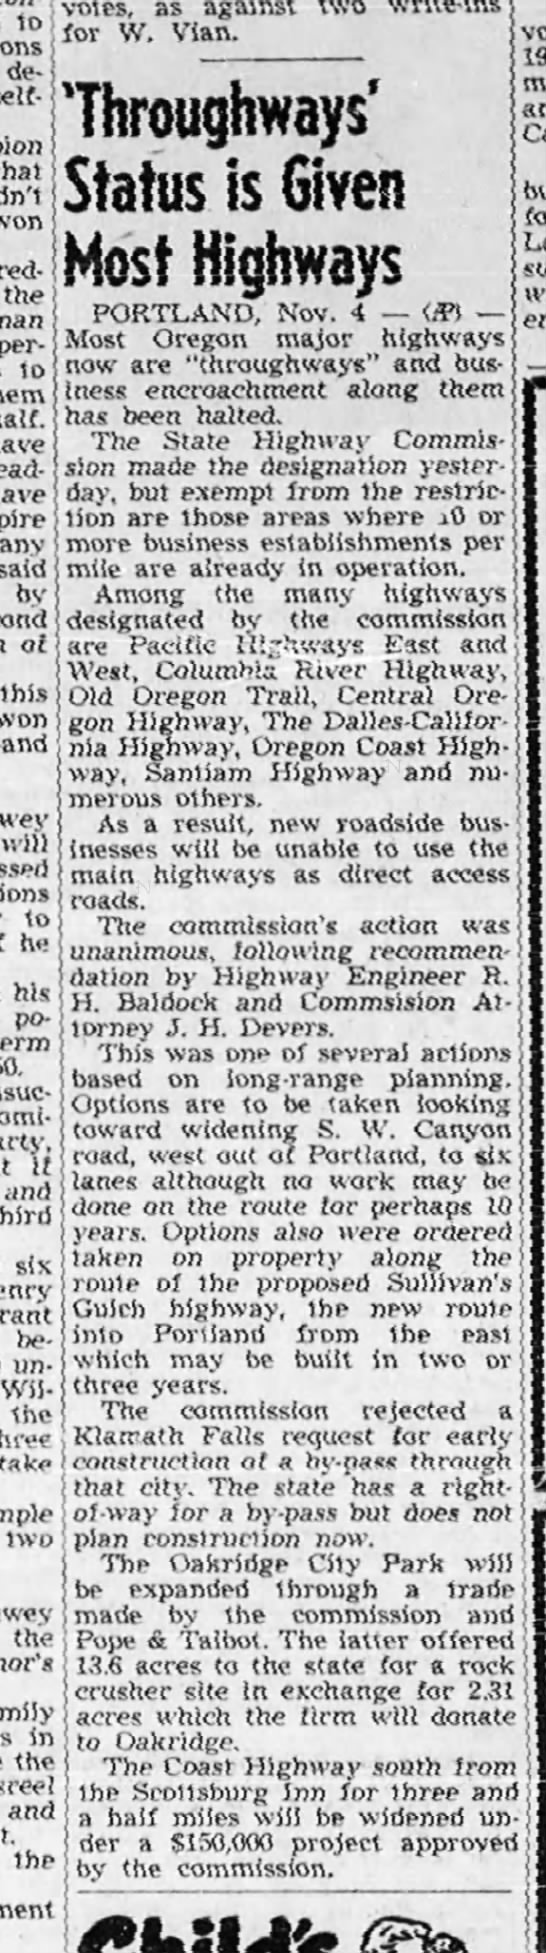 'Throughways' Status is Given Most Highways [OR] -